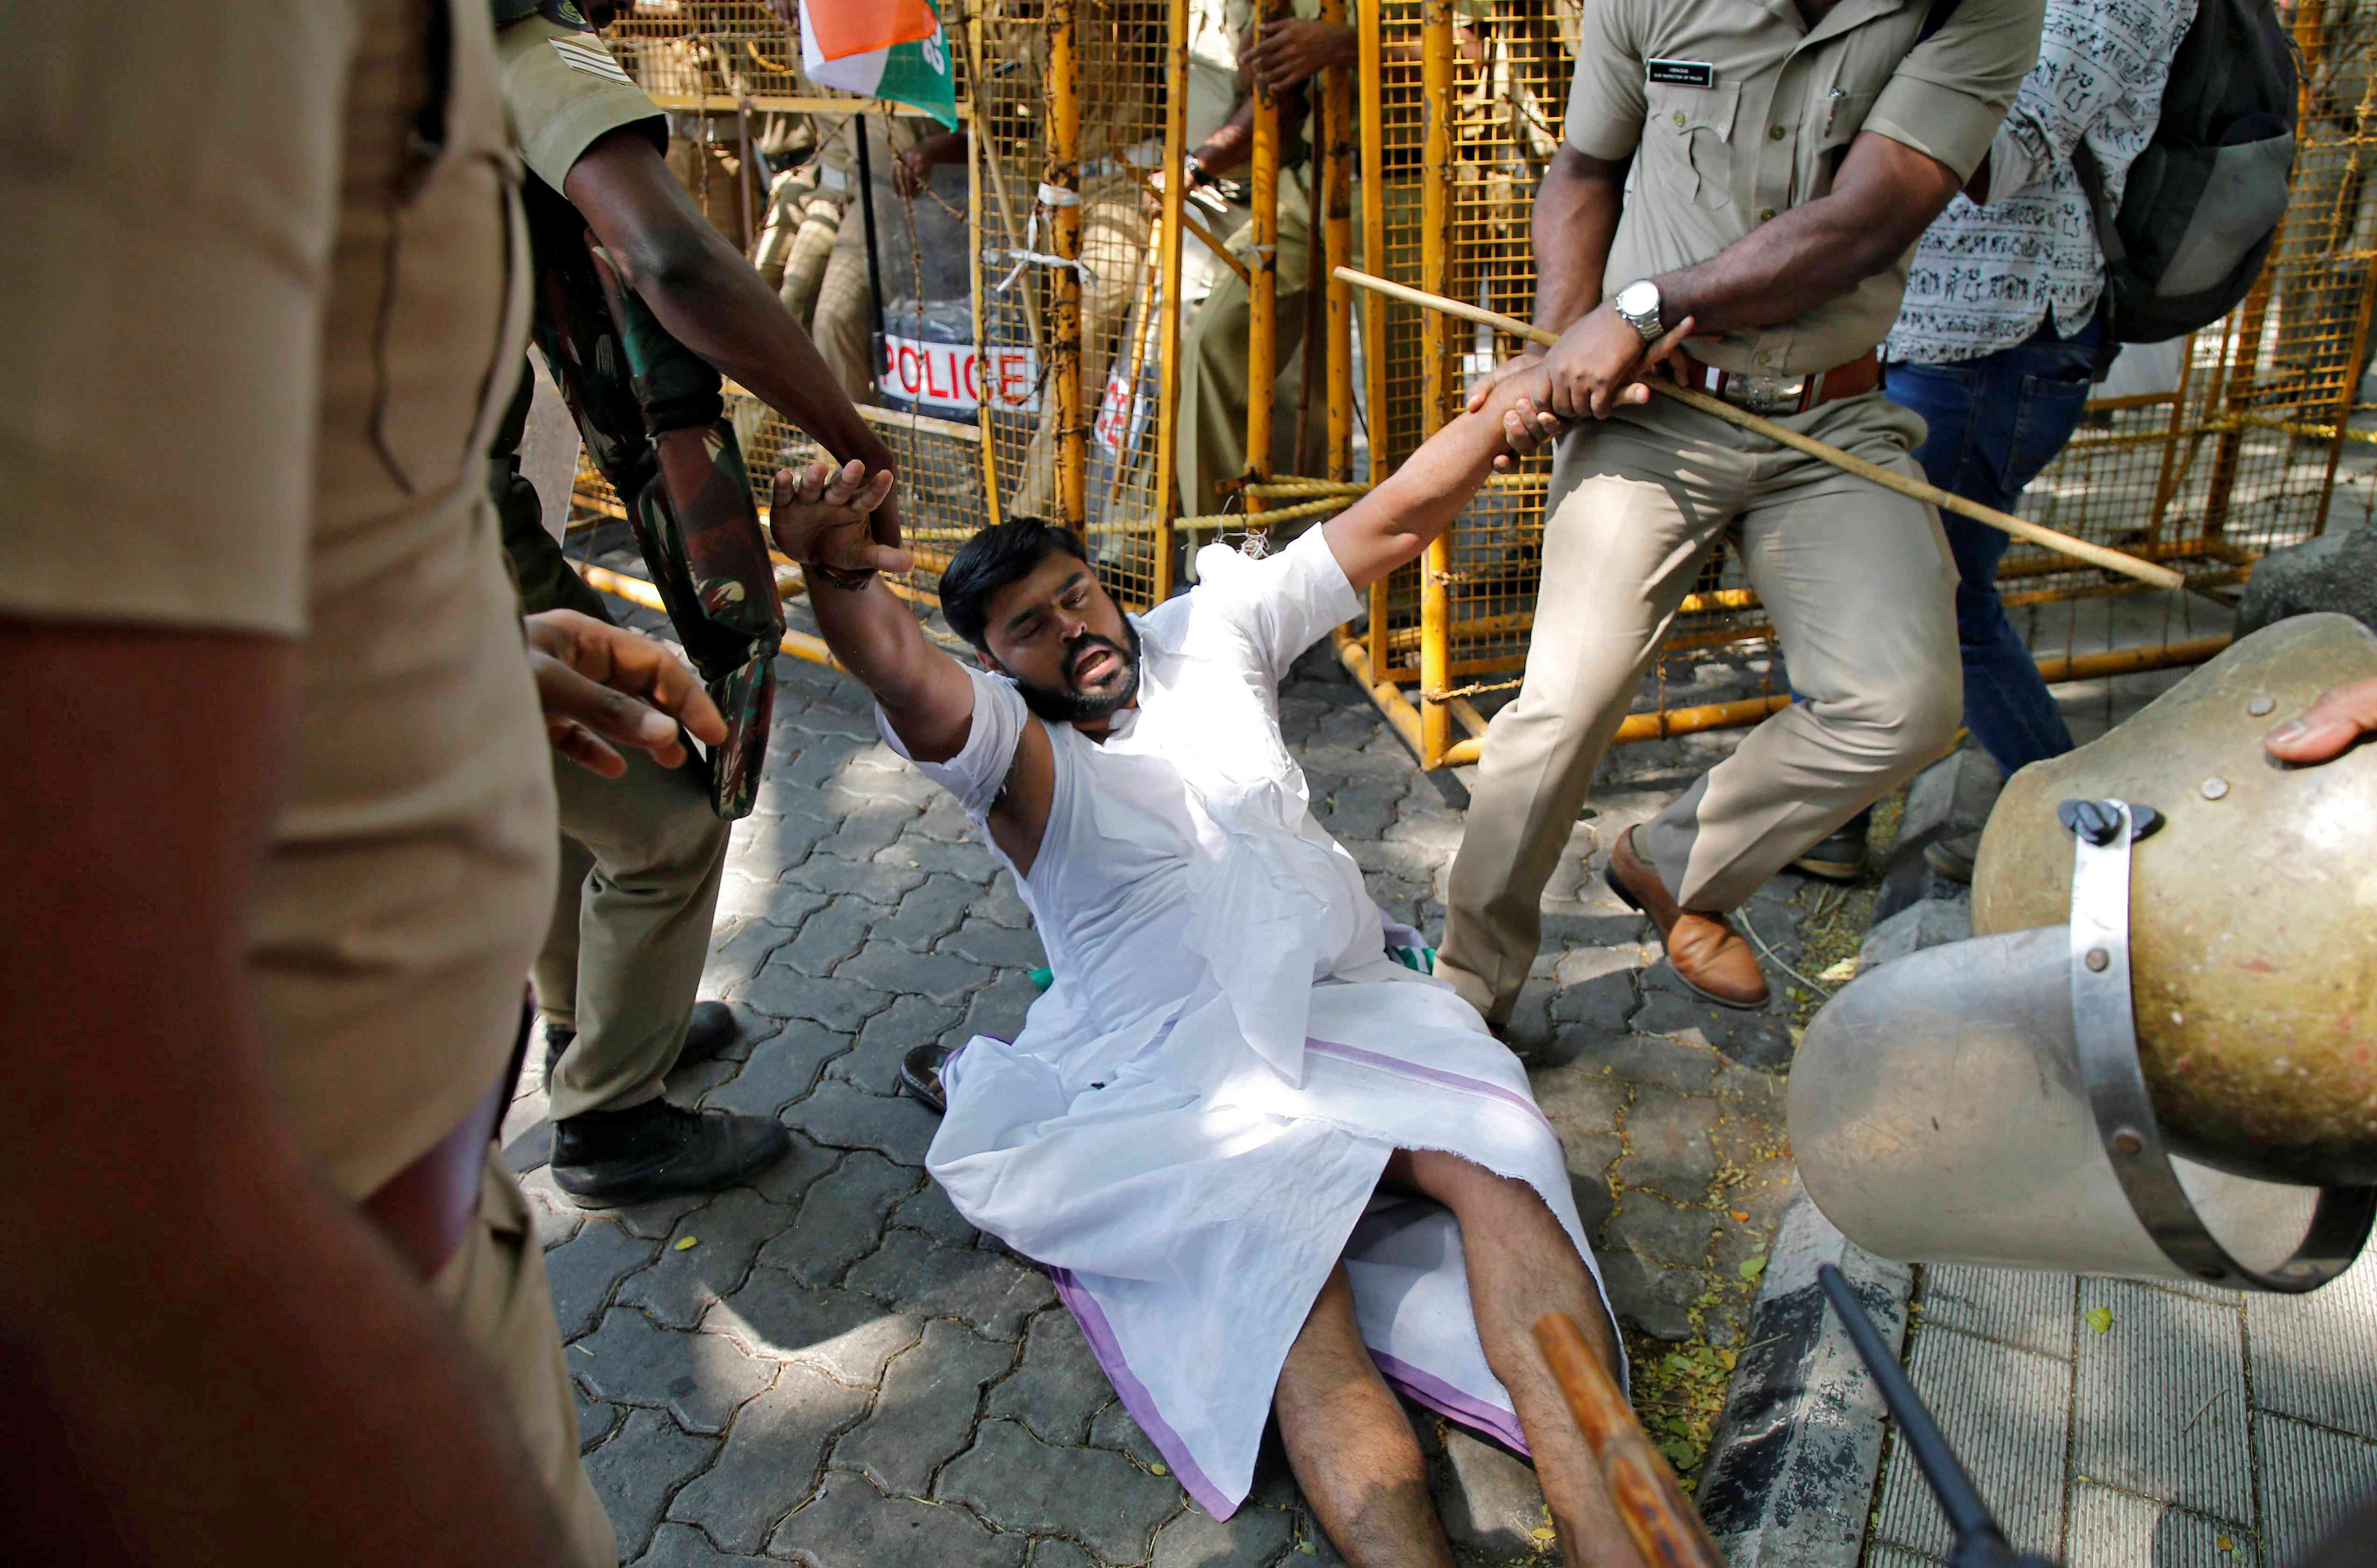 Police detain a protestor during a demonstration in Kochi against the entry of two women into the Sabarimala temple. (Photo credit: Sivaram V/Reuters).